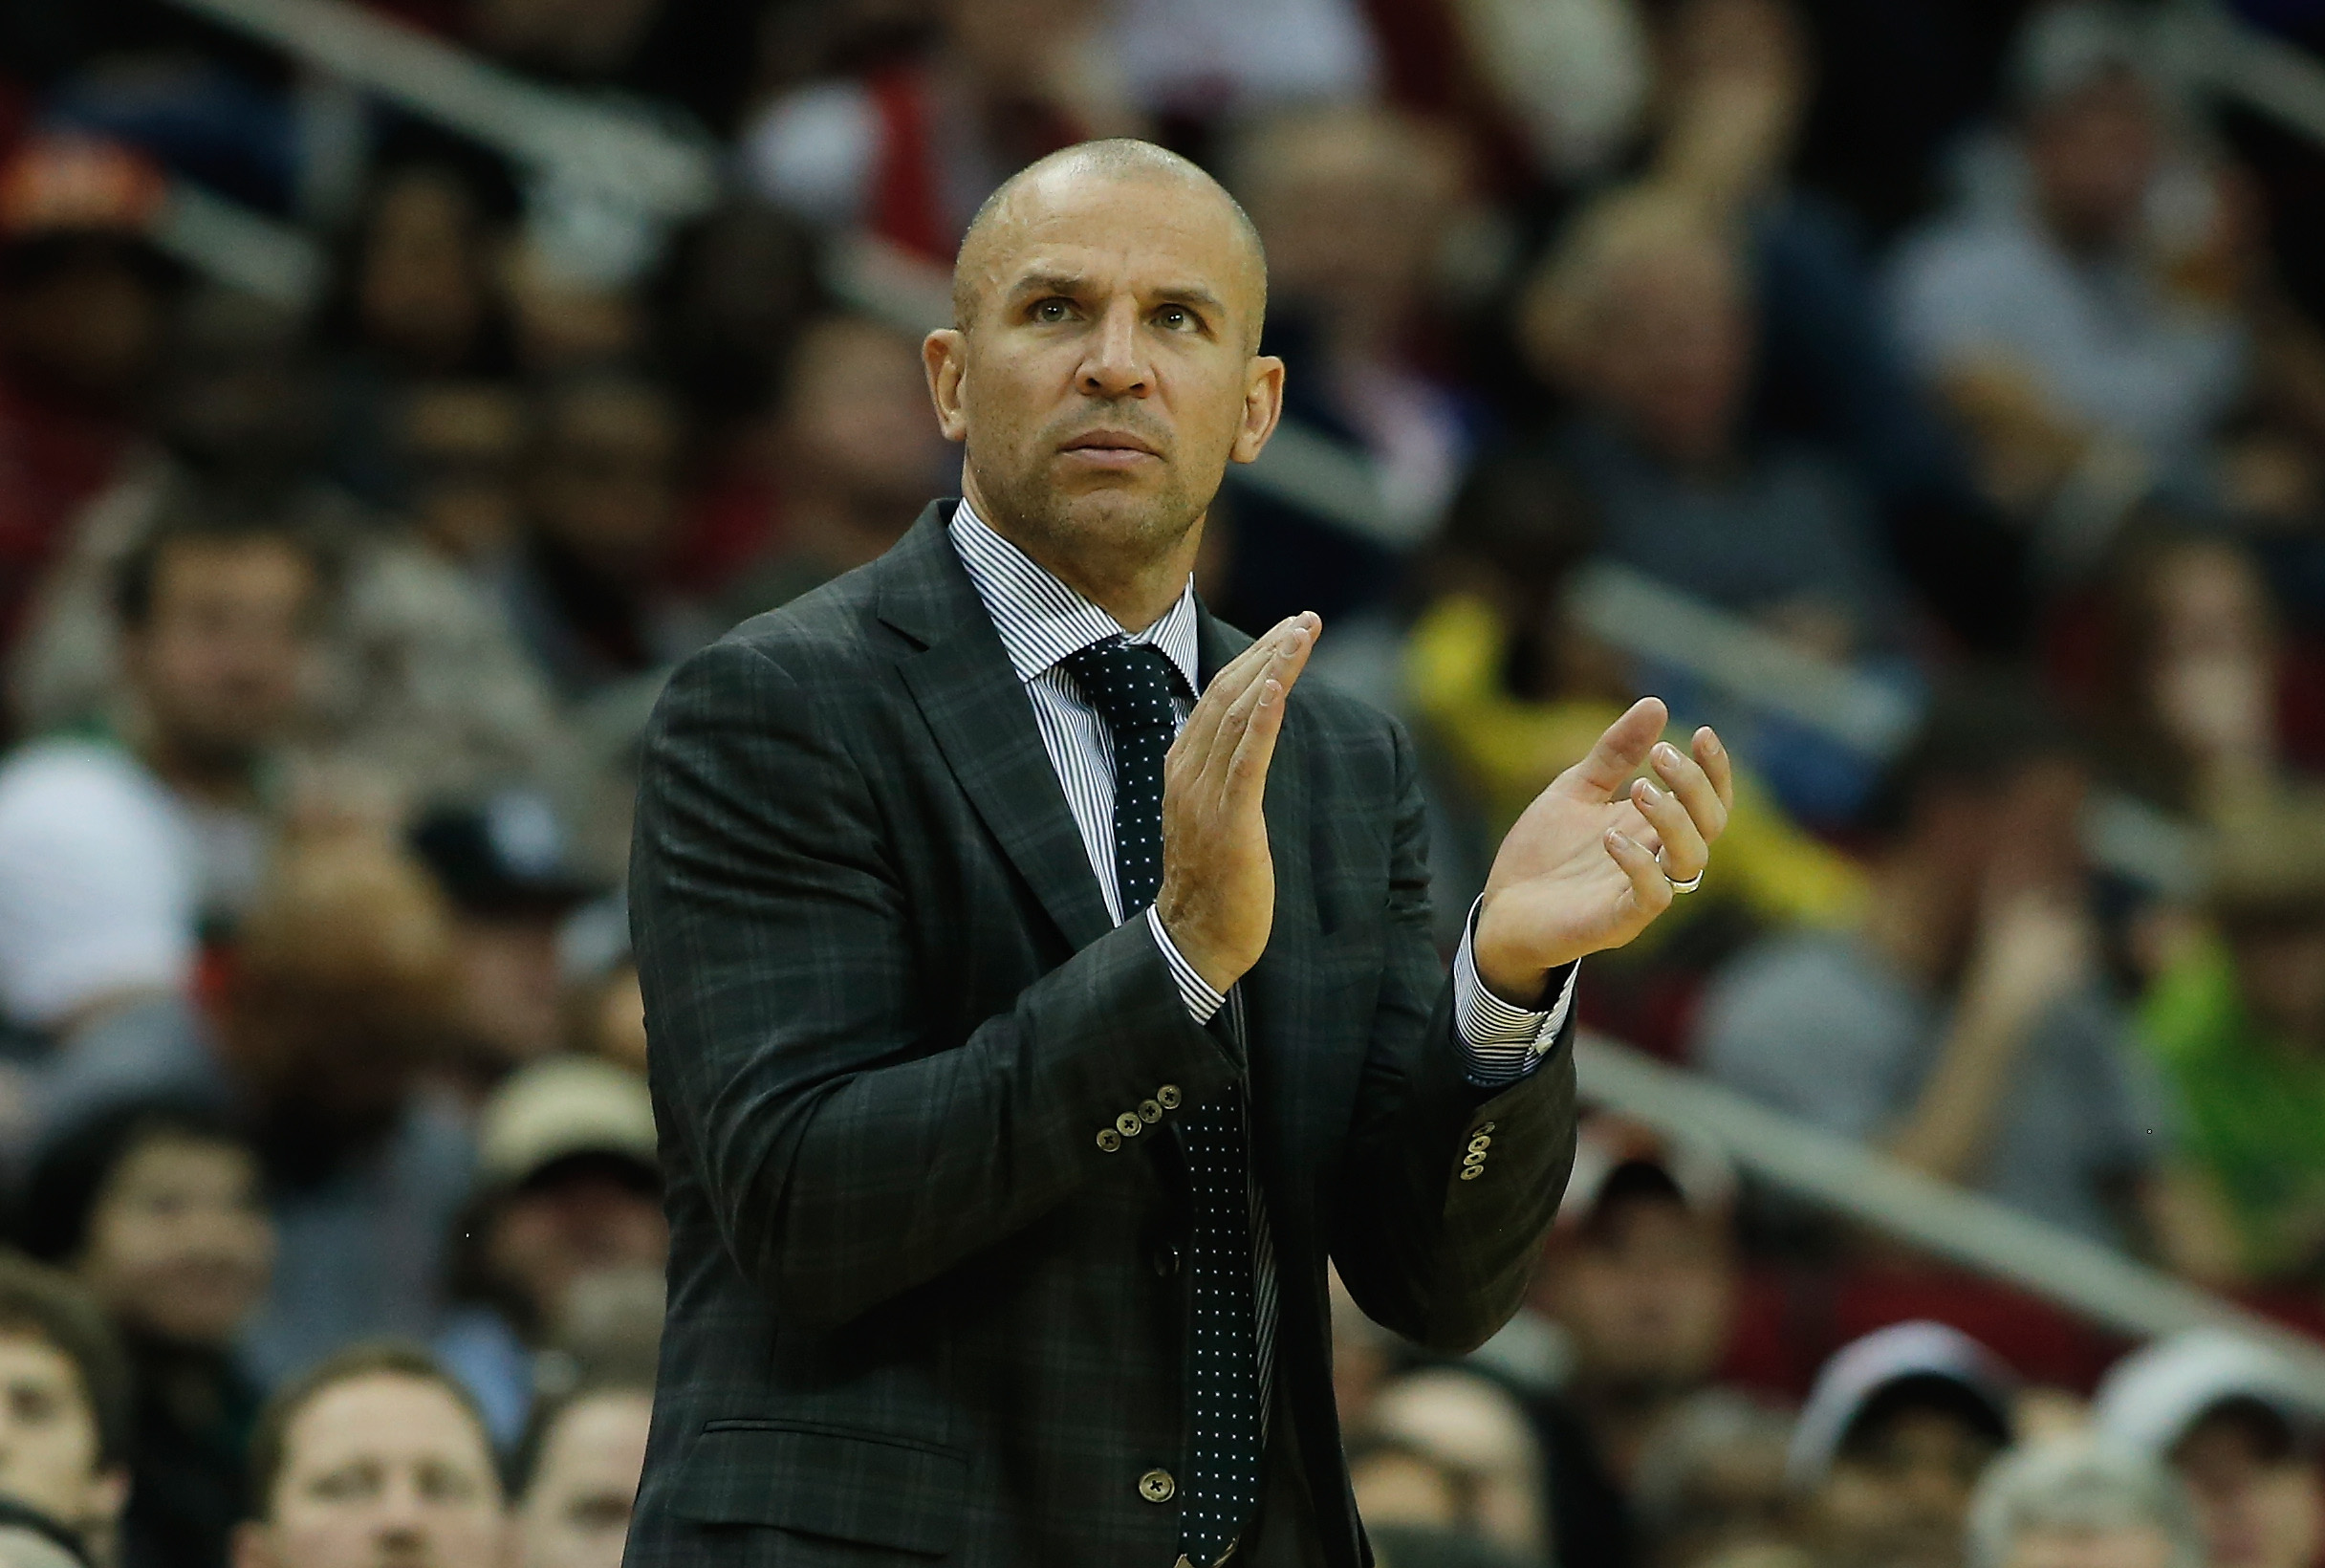 HOUSTON, TX - NOVEMBER 29:   Jason Kidd of the Brooklyn Nets watches a play against the Houston Rockets during the game at Toyota Center on November 29, 2013 in Houston, Texas. (Photo by Scott Halleran/Getty Images)